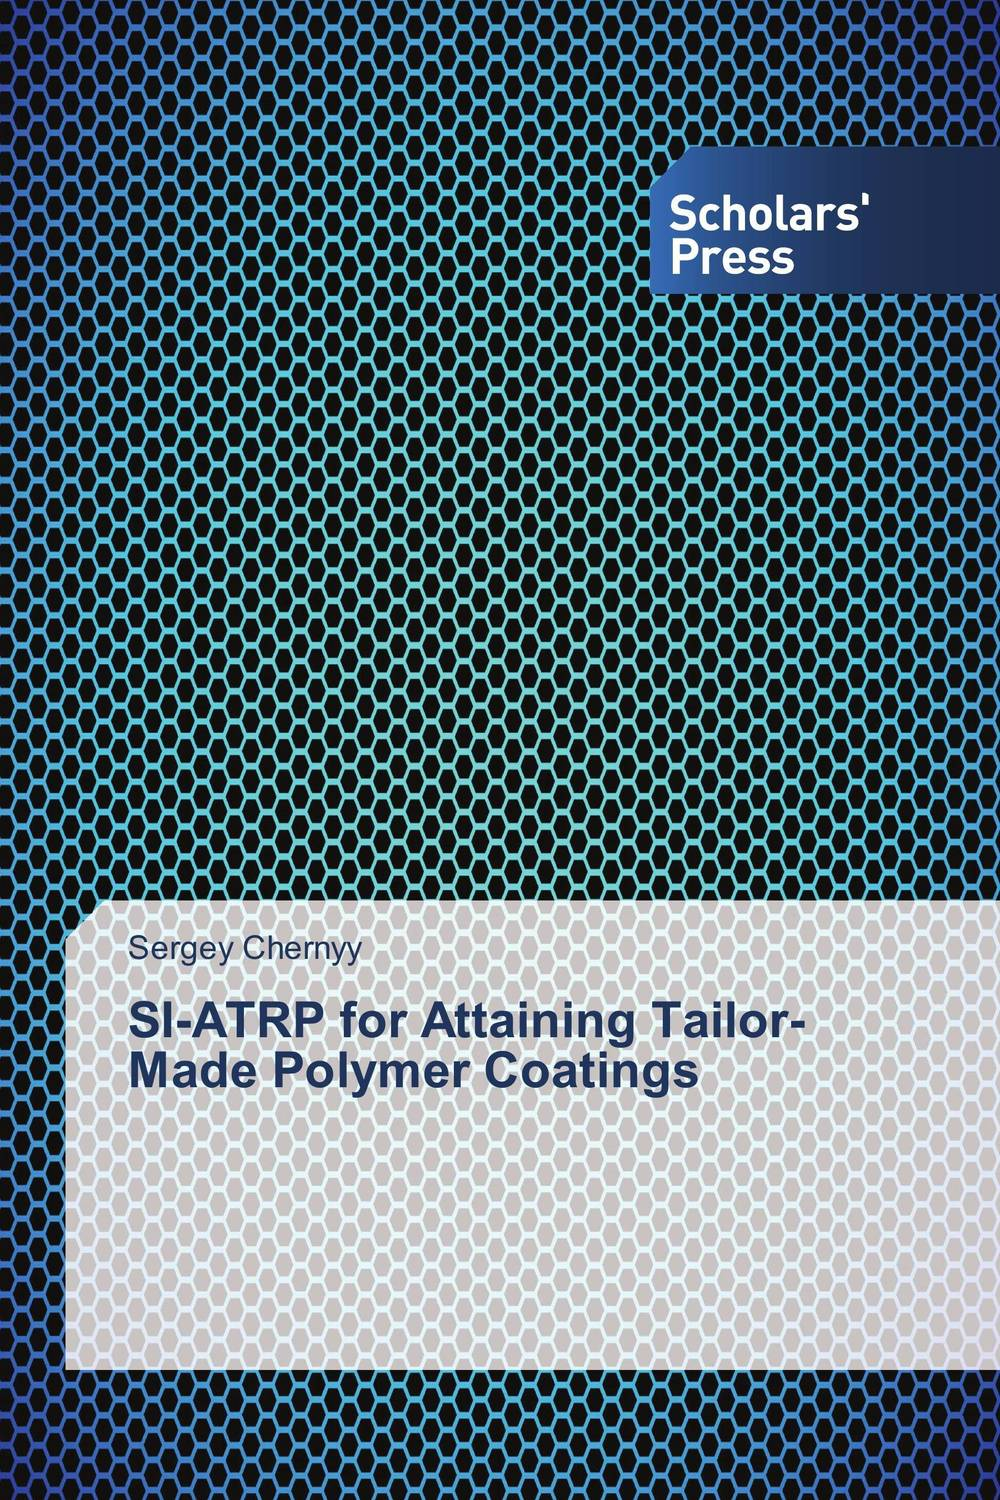 SI-ATRP for Attaining Tailor-Made Polymer Coatings driven to distraction